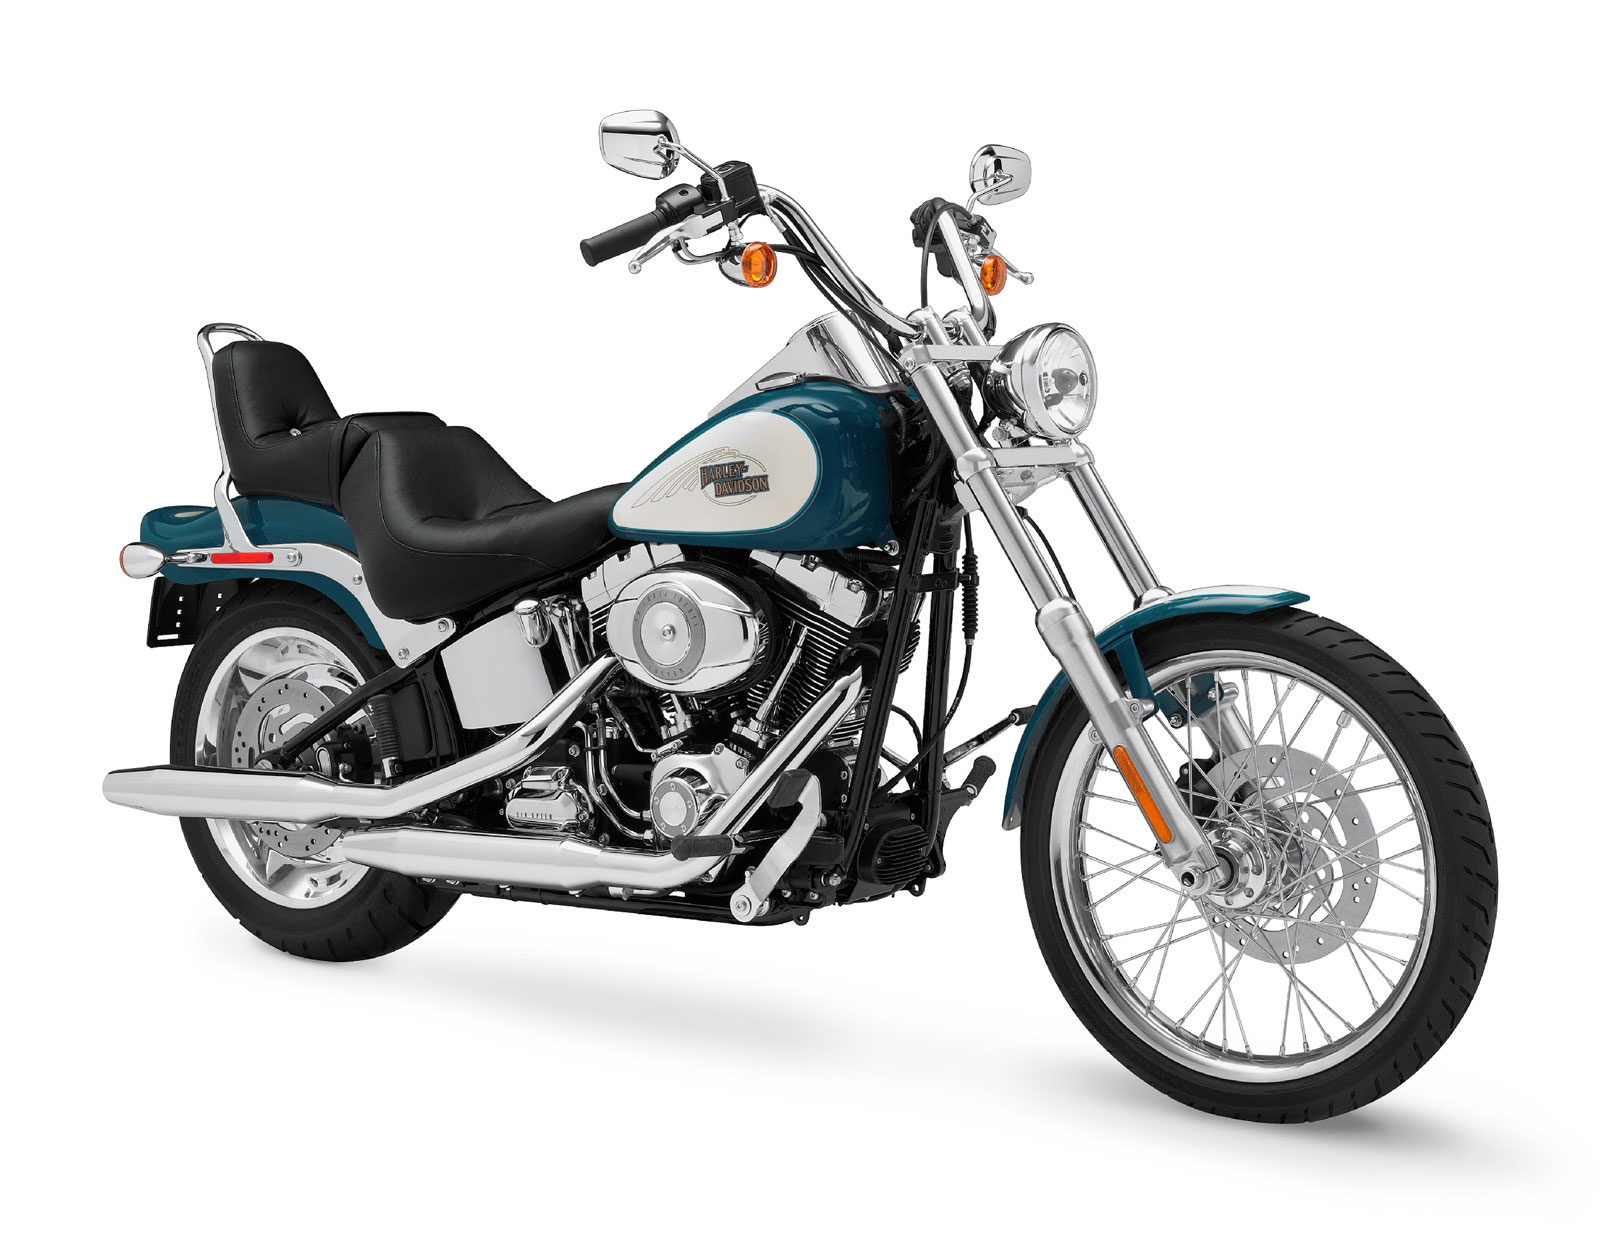 Harley-davidson softail photo - 4